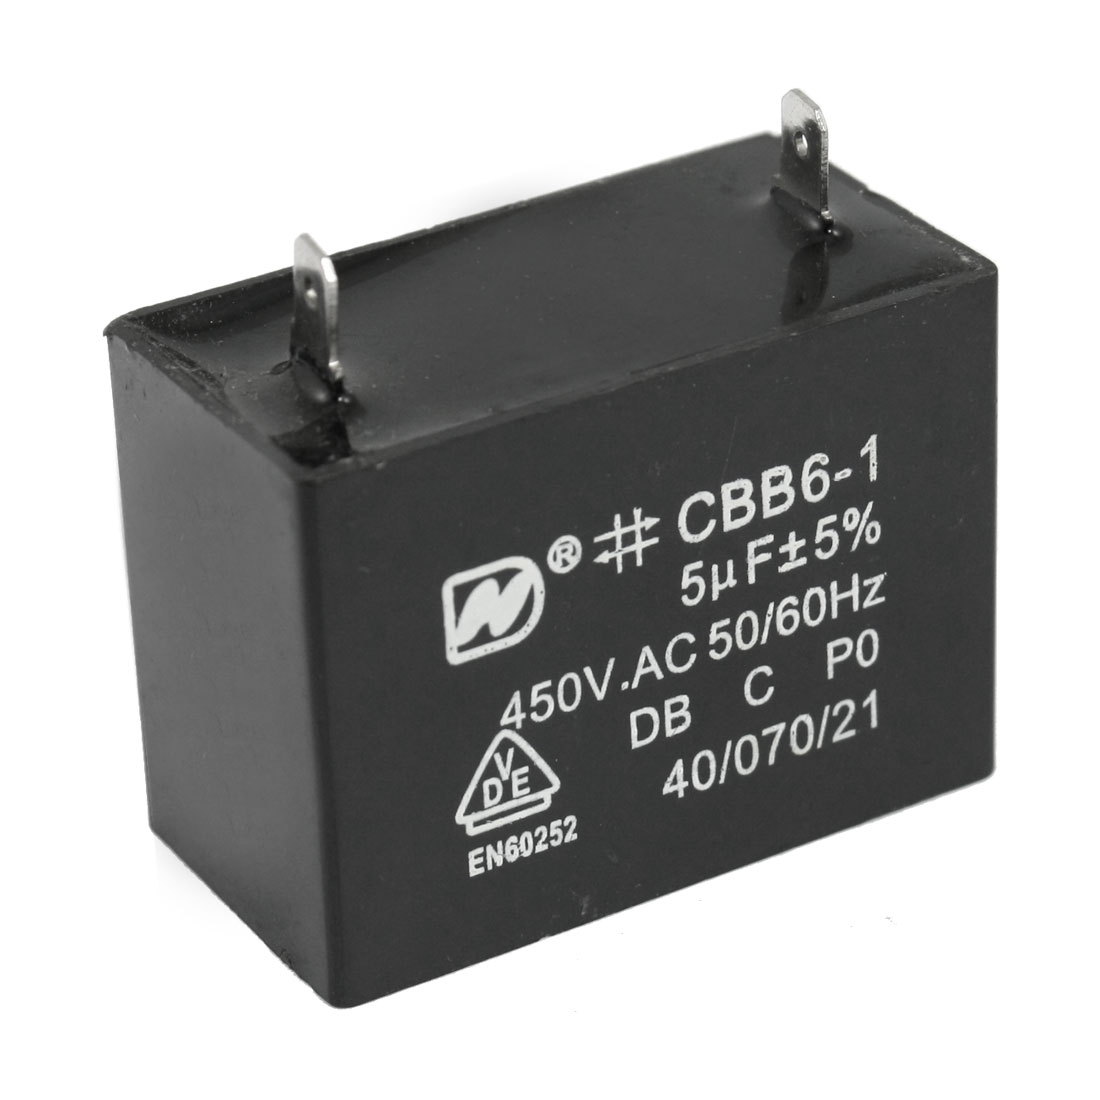 CBB6-1 5uF 5% 450V AC Air Conditioner Fan Motor Running Capacitor Black